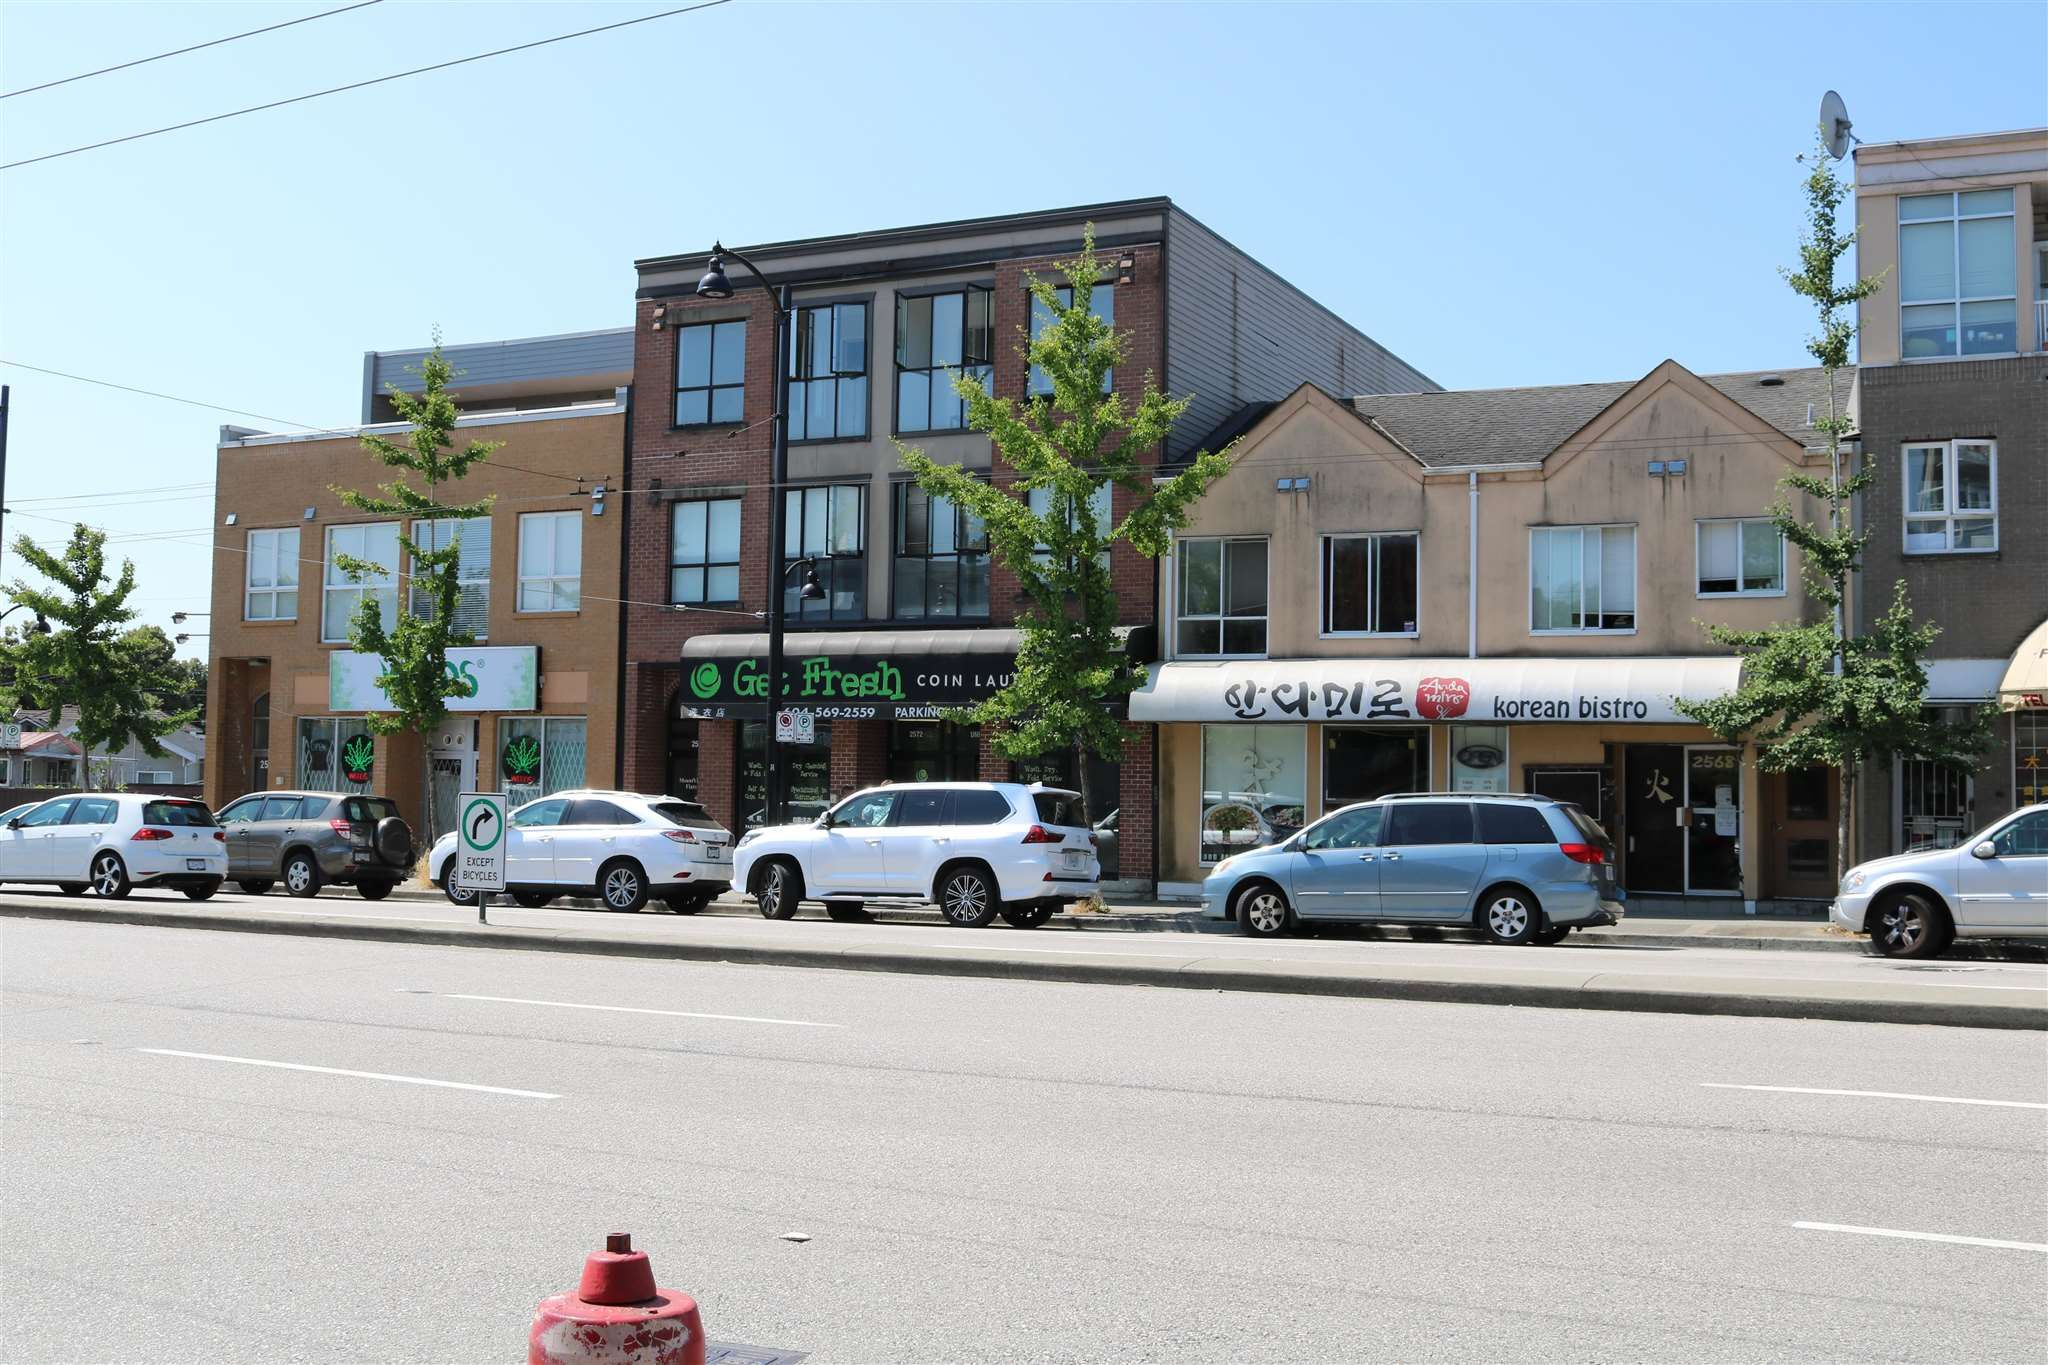 """Main Photo: 2576 KINGSWAY in Vancouver: Collingwood VE Multi-Family Commercial for sale in """"Mountainview Flats"""" (Vancouver East)  : MLS®# C8039679"""